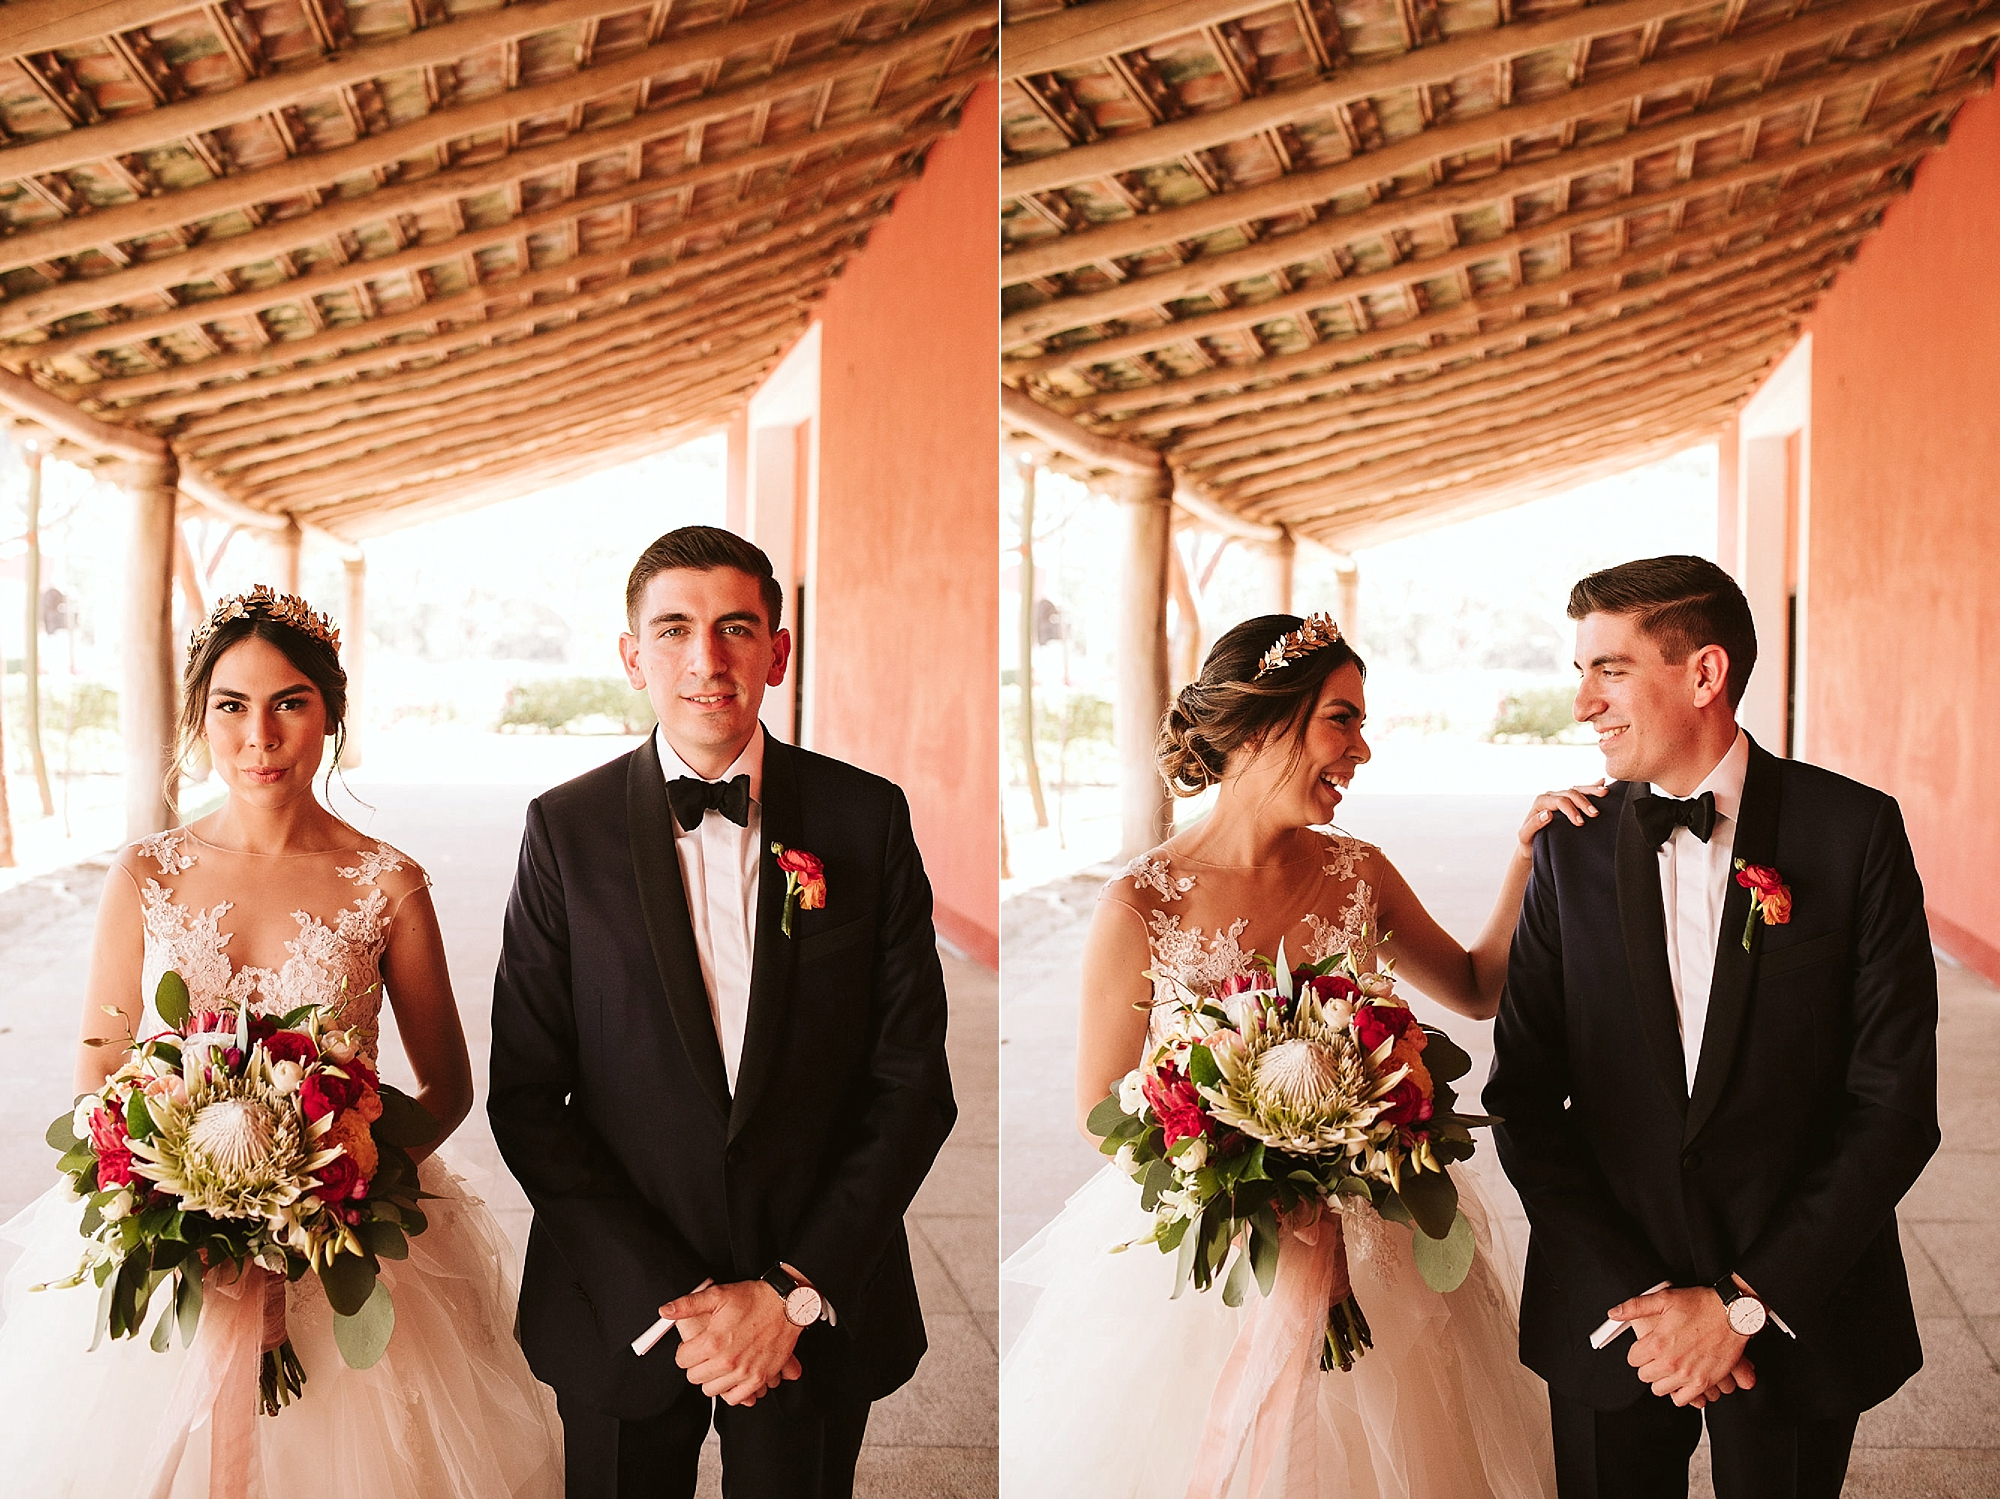 Sayulita-wedding-76.jpg